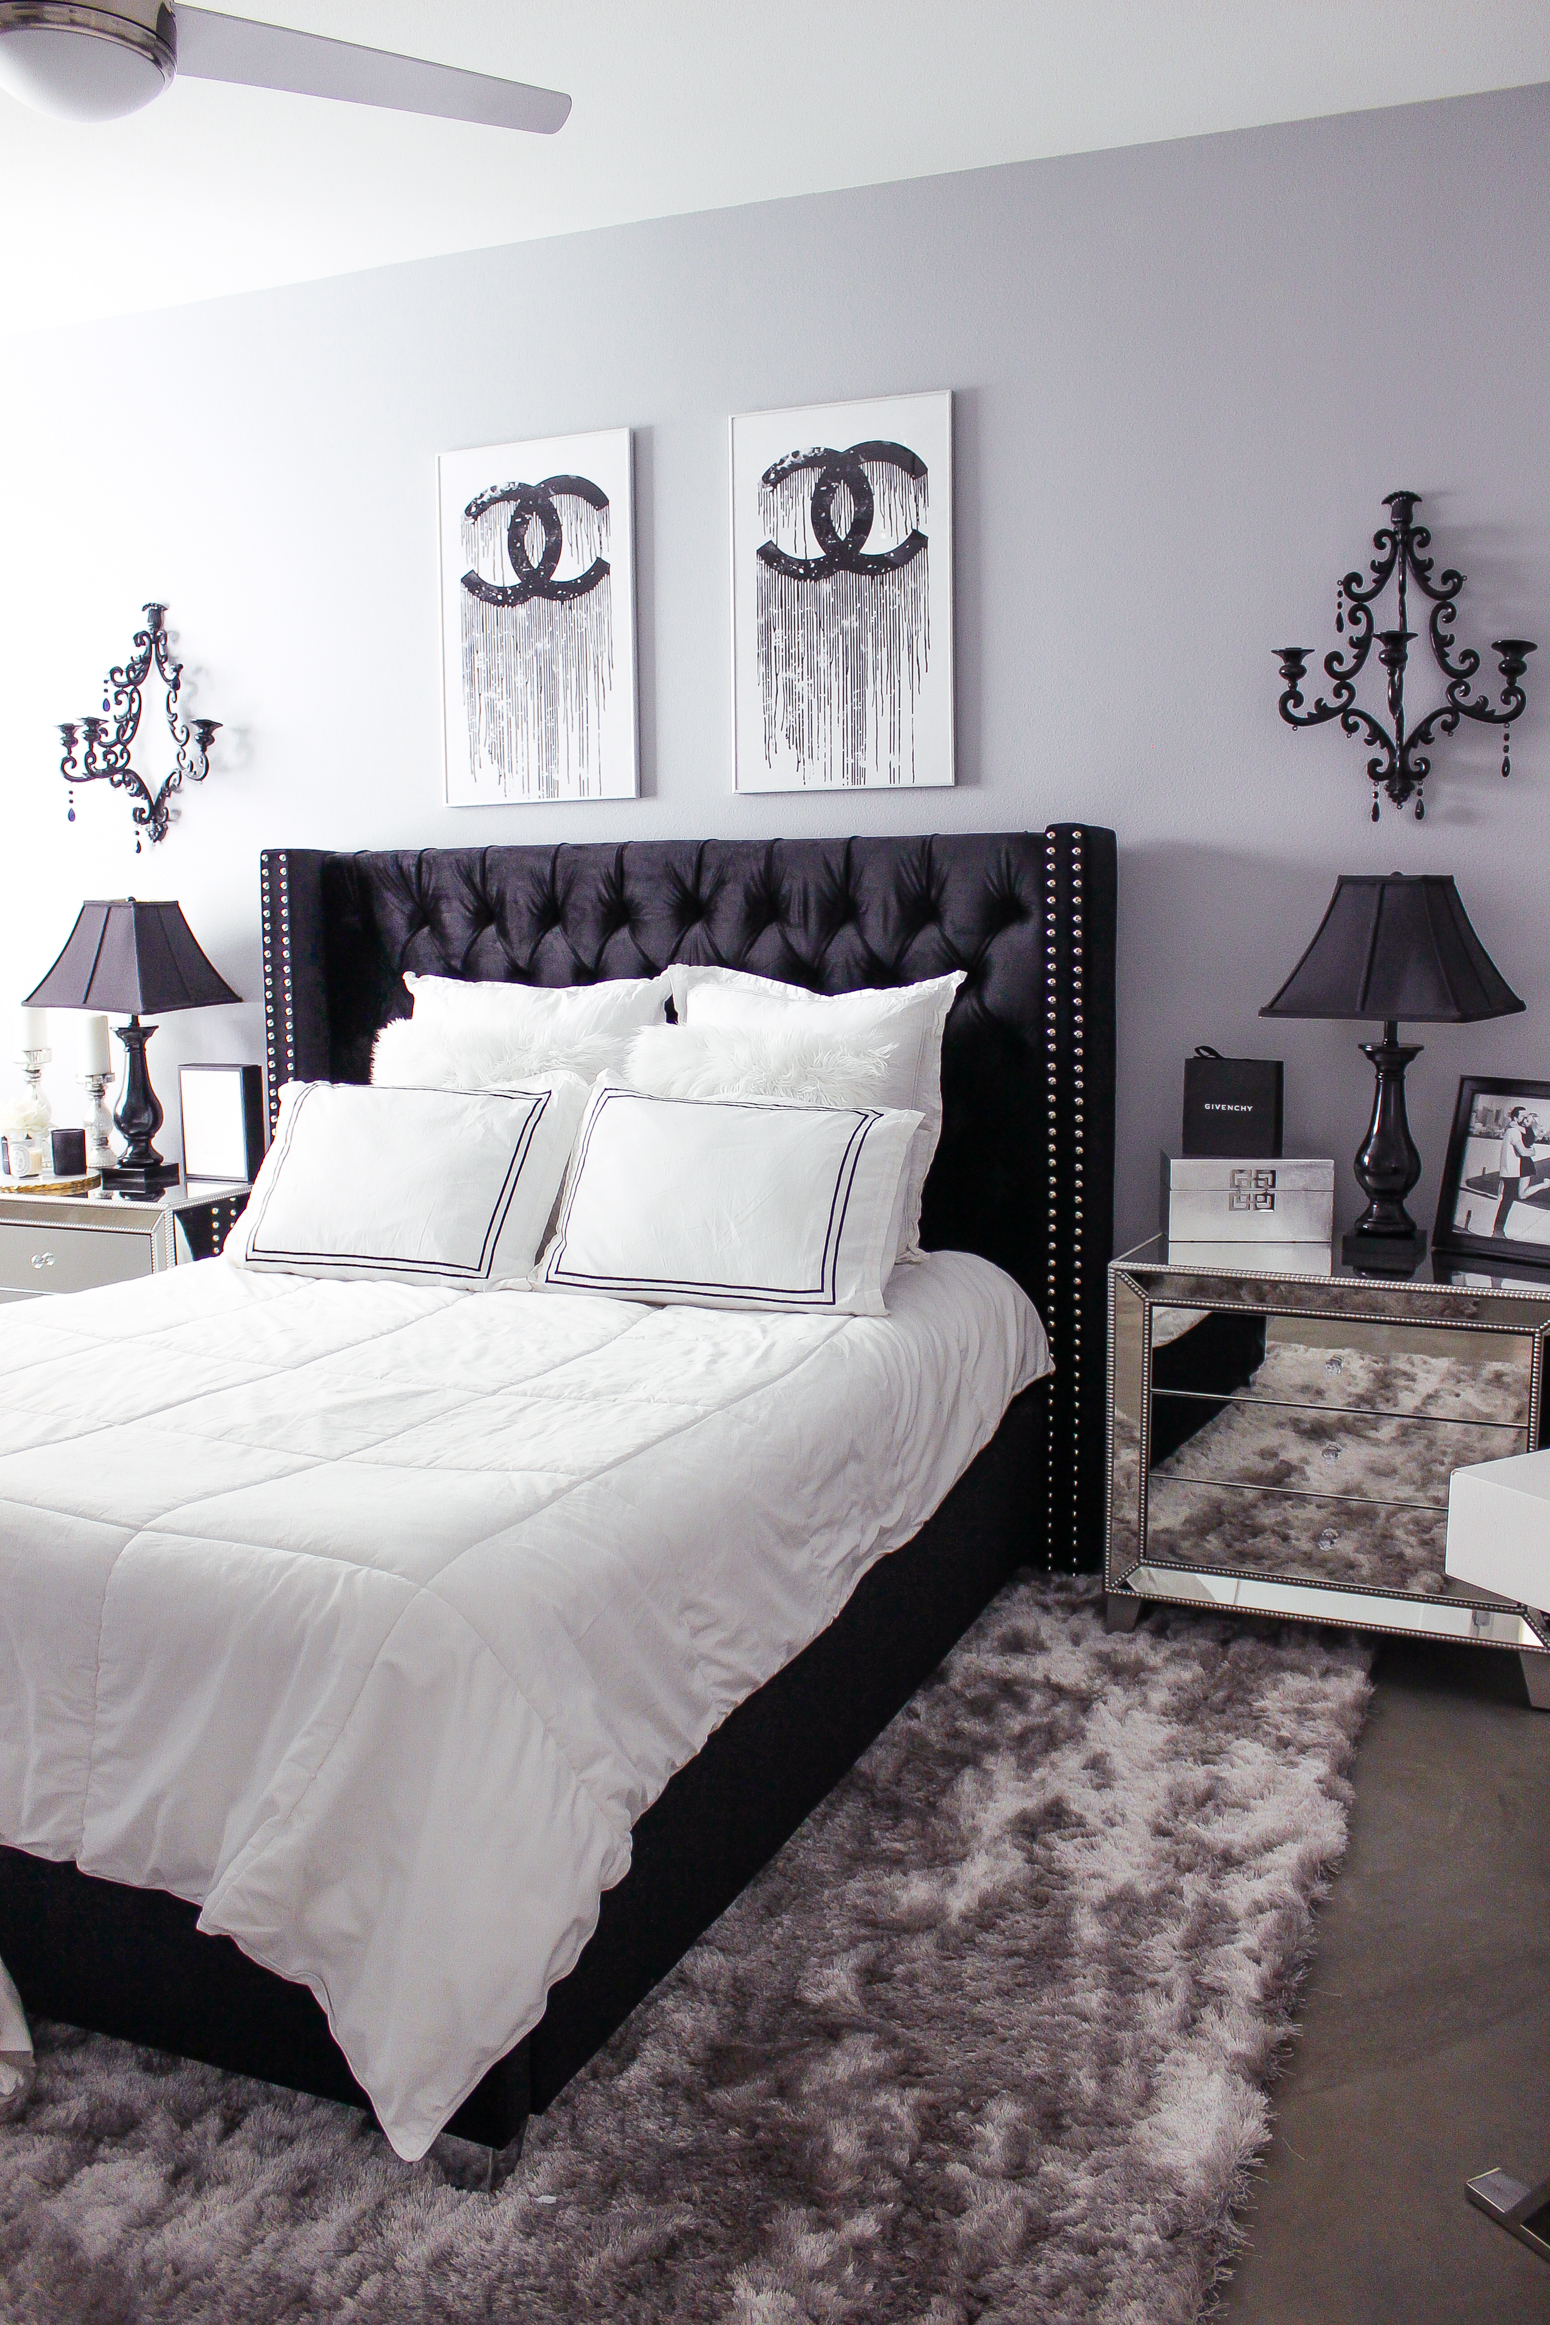 Black white bedroom decor reveal - Black white and red bedroom decorating ideas ...